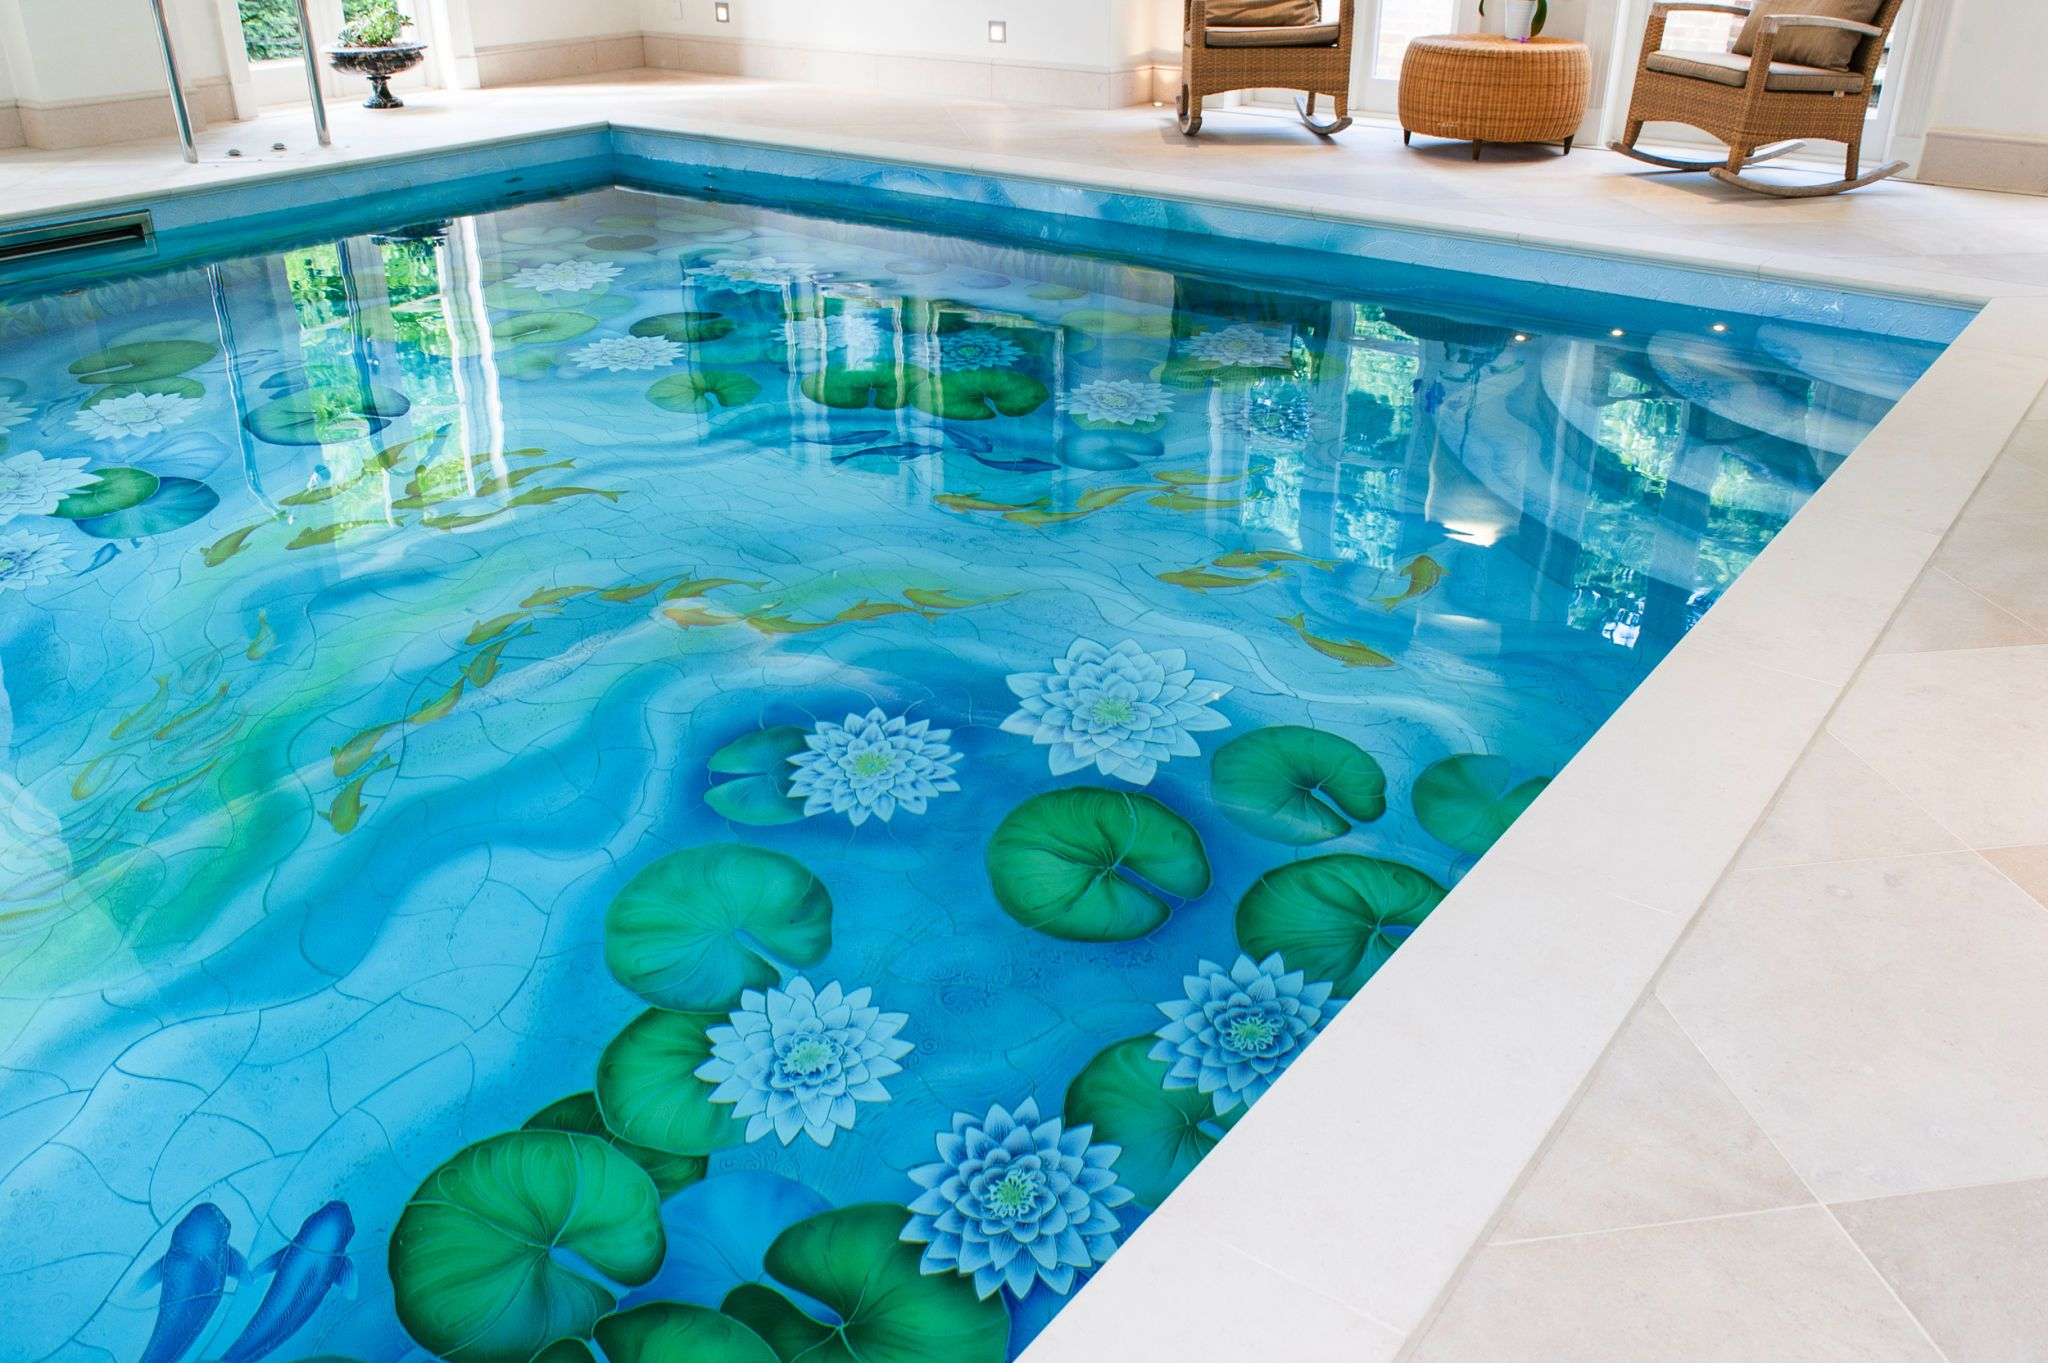 Indoor Swimming Pool With Beautiful Water Lily Ceramic Tile Mural Design